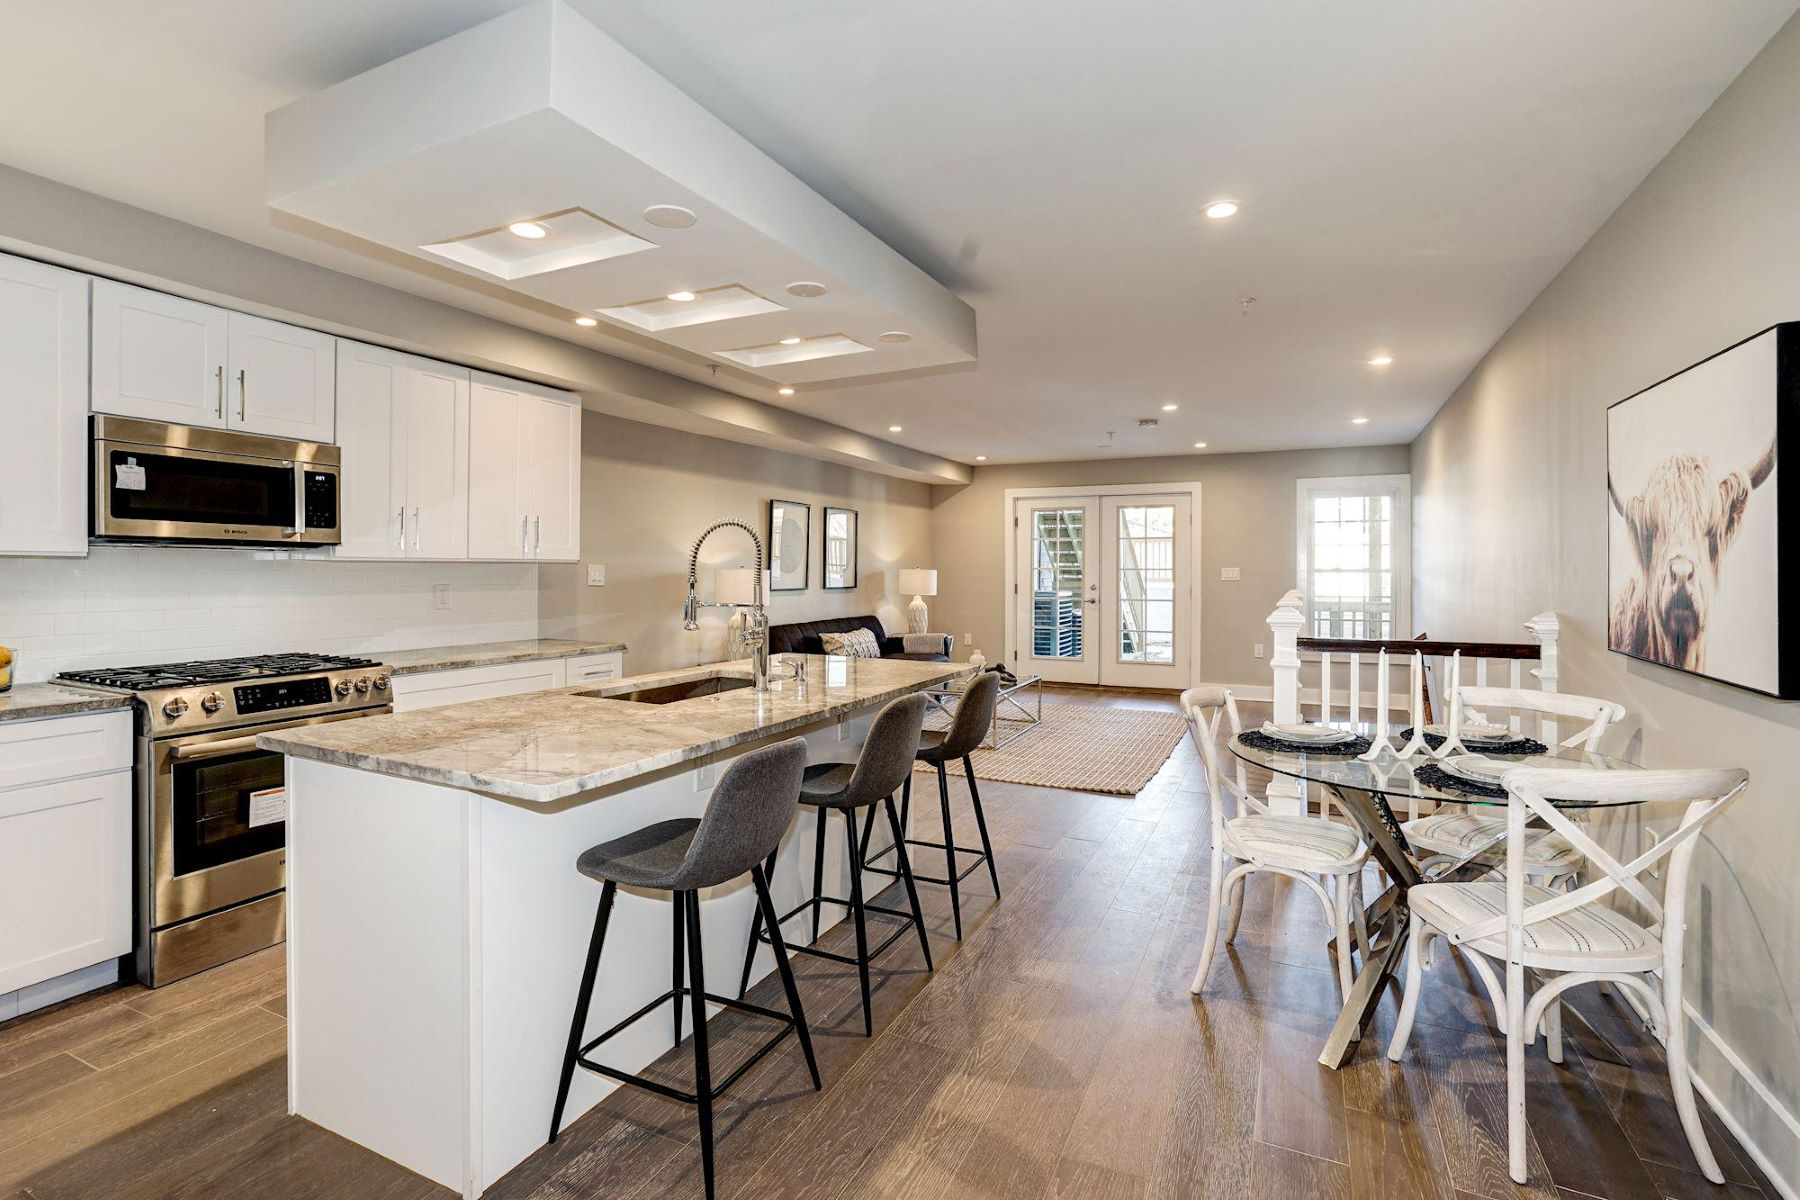 Other Residential for Sale at 1826 Independence Ave SE #one 1826 Independence Ave SE #one Washington, District Of Columbia 20003 United States